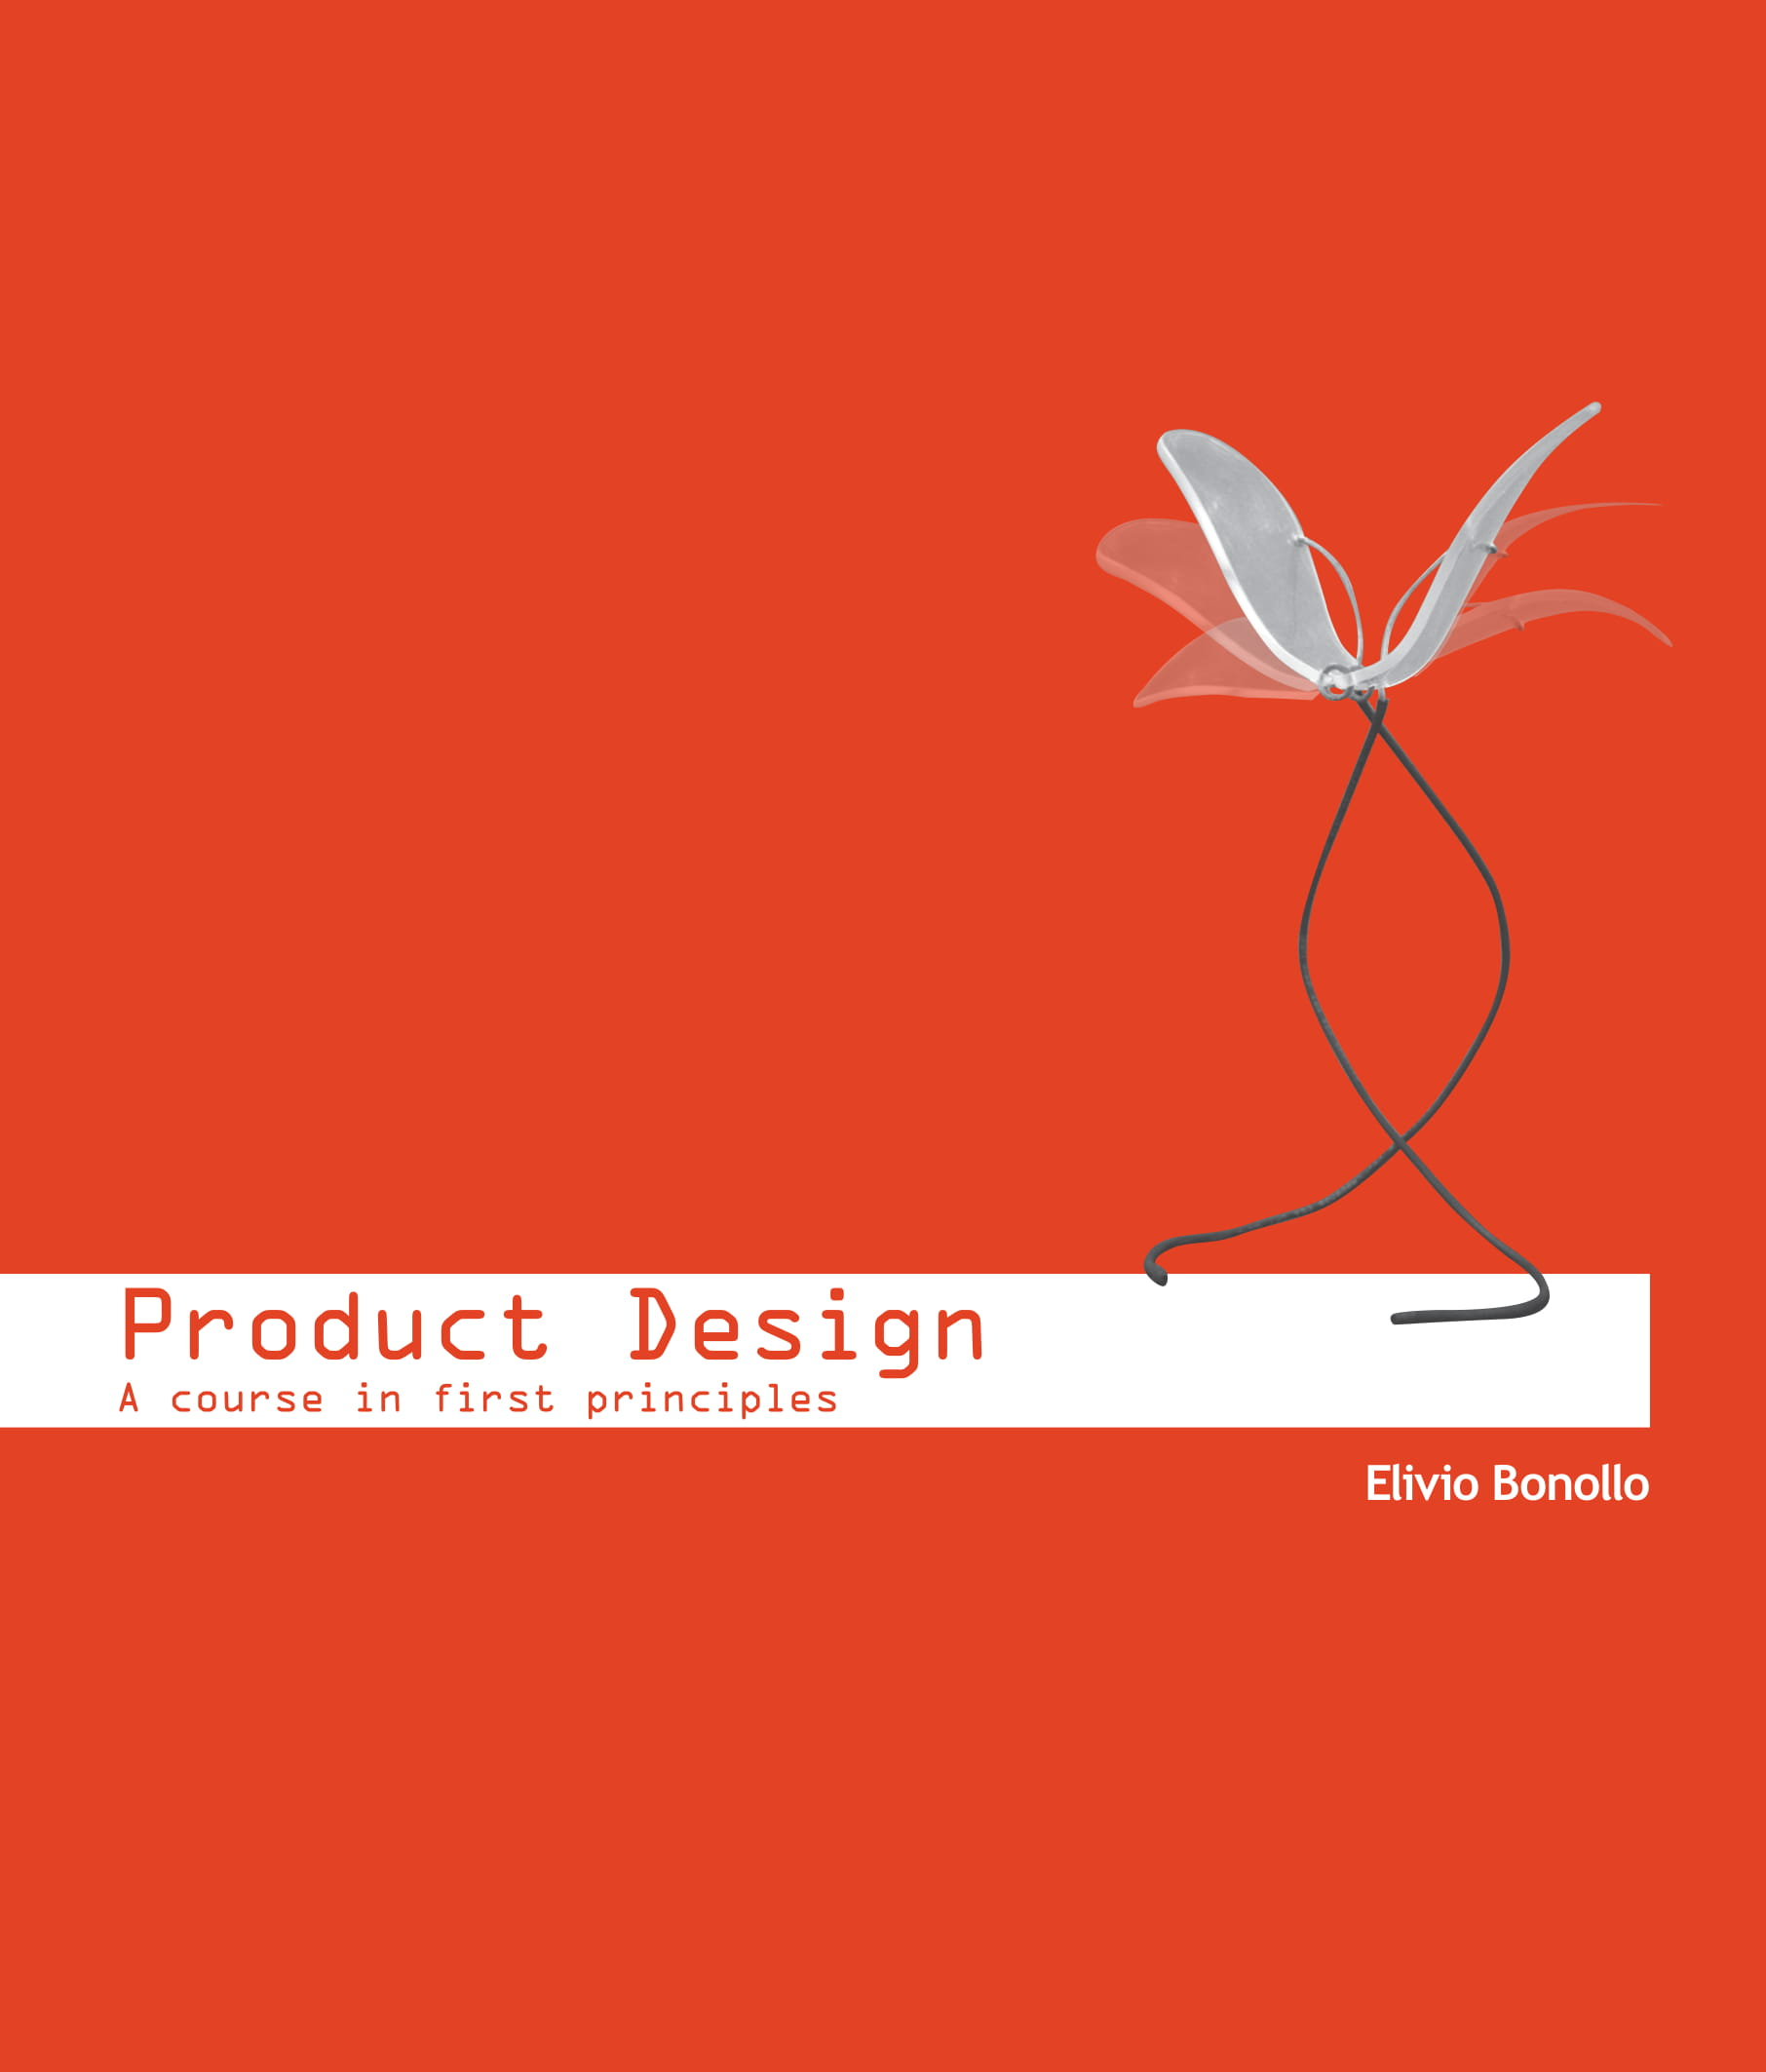 development and analysis of product design principles example 01